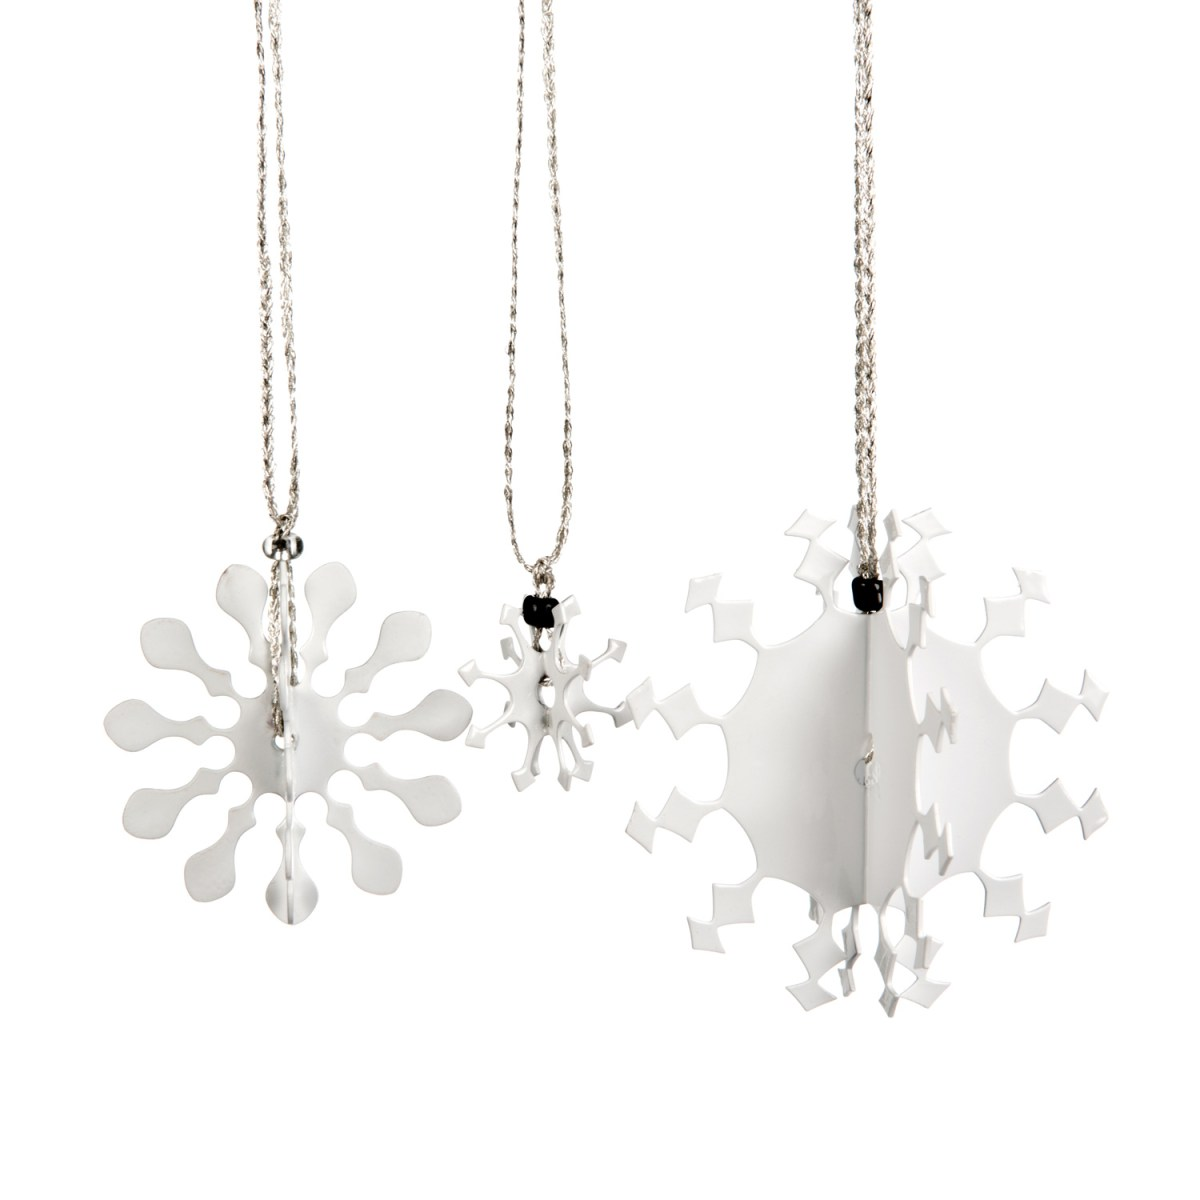 Three 3D metal snowflakes coated in white enamel paint for hanging on the Christmas tree.